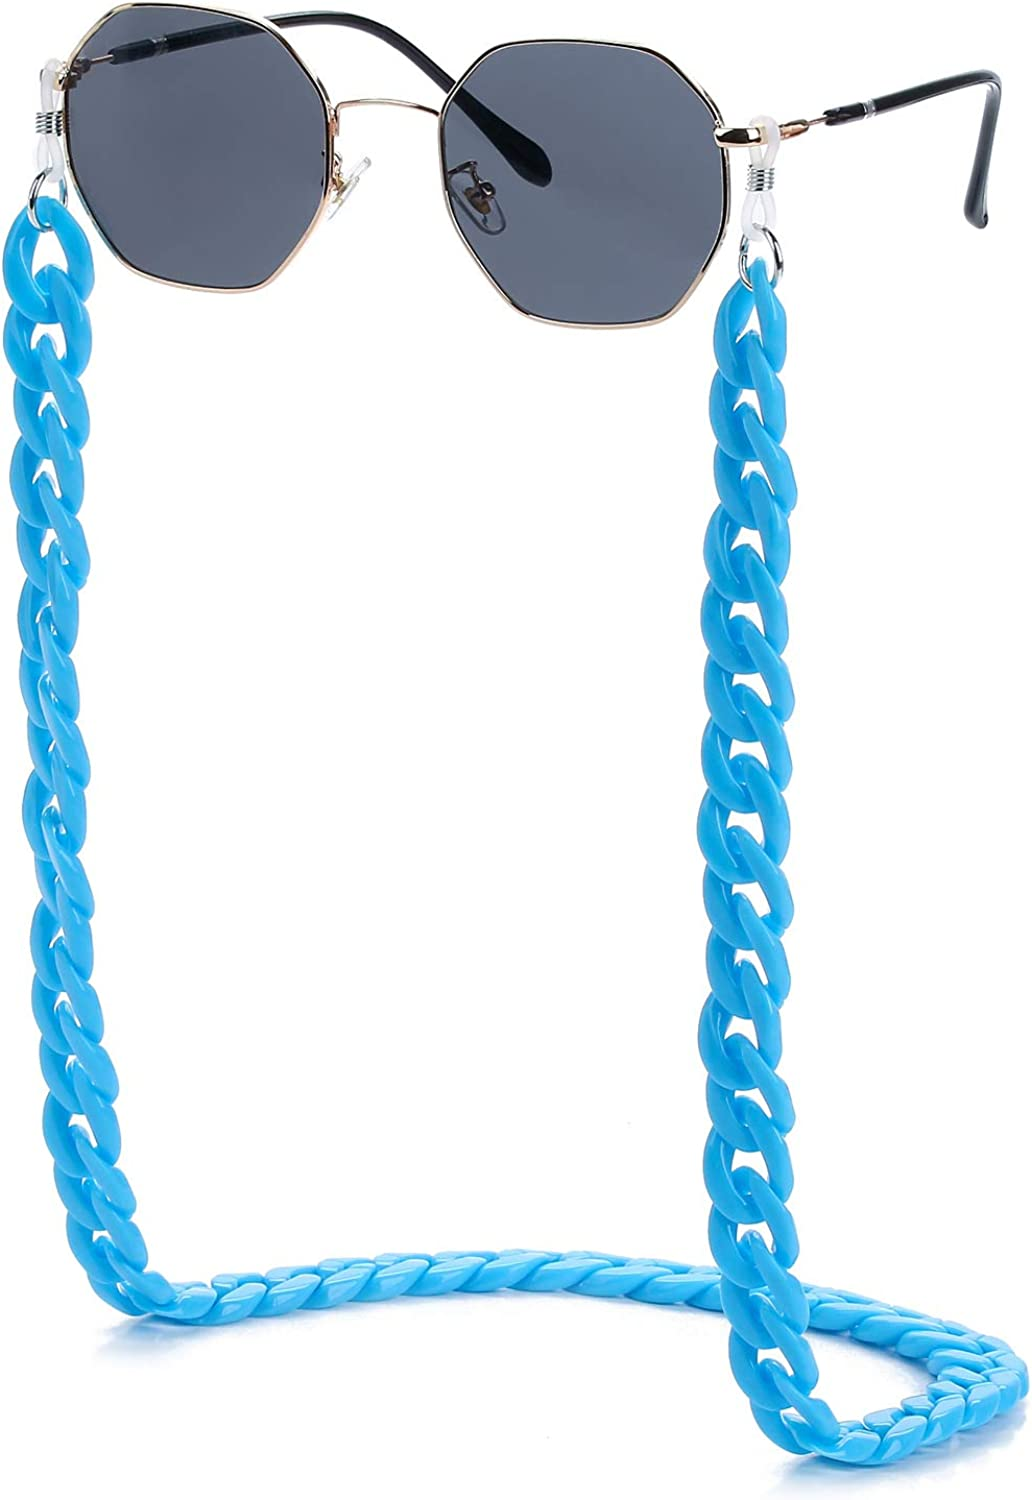 Mask Glasses Lanyard Unisex Mask Strap Anti-Lost Mask Leash Eyeglass Chains for Women with Clips